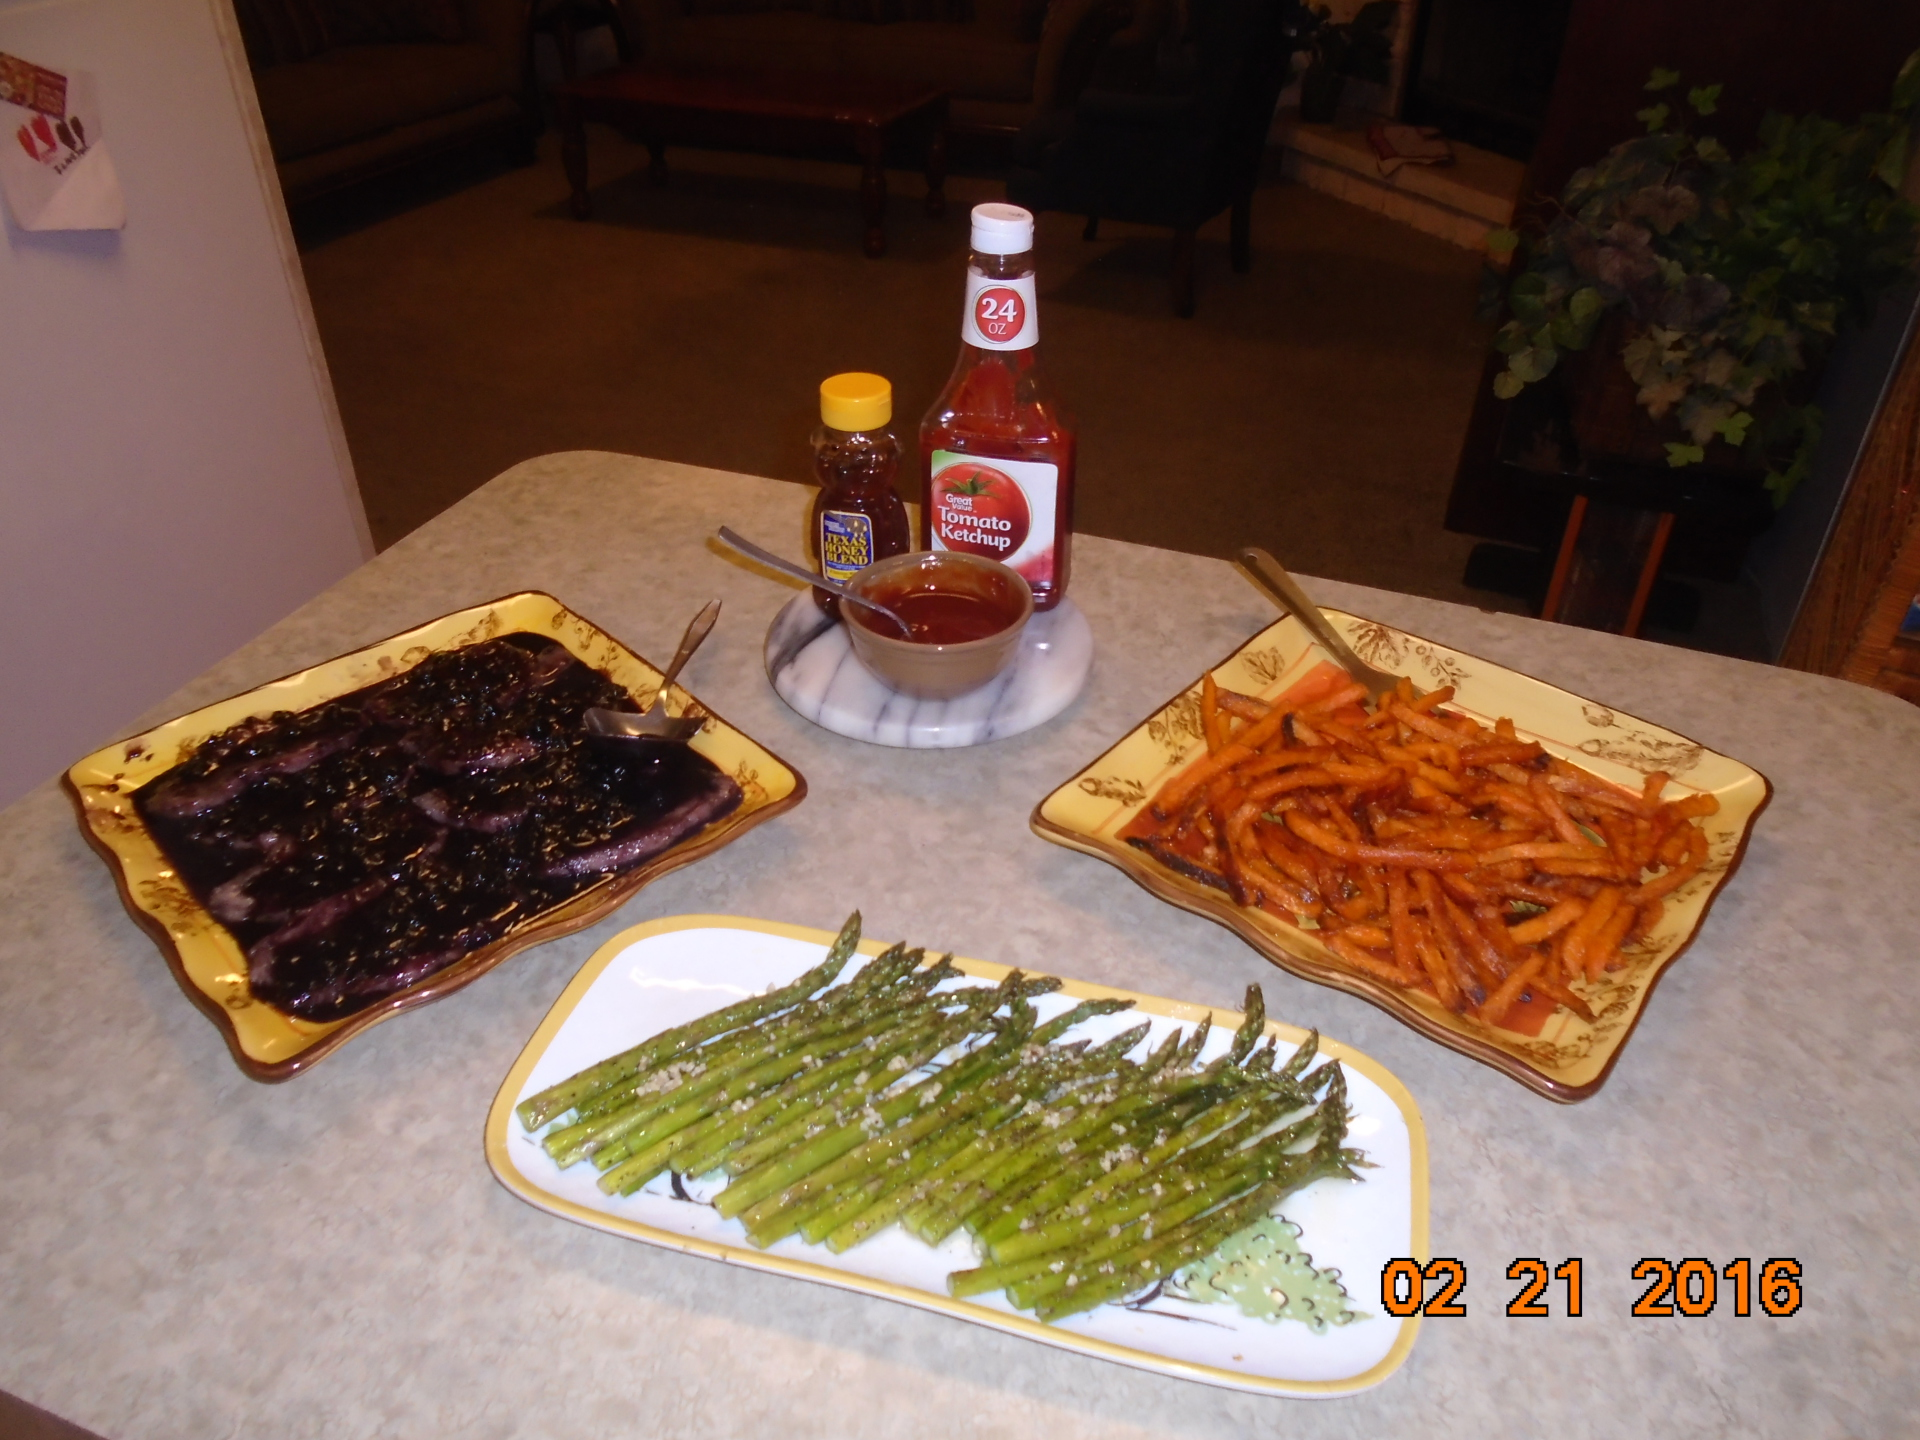 Ginger Plum Pork Chops, Asparagus, and Sweet Potato Fries Dipping Sauce